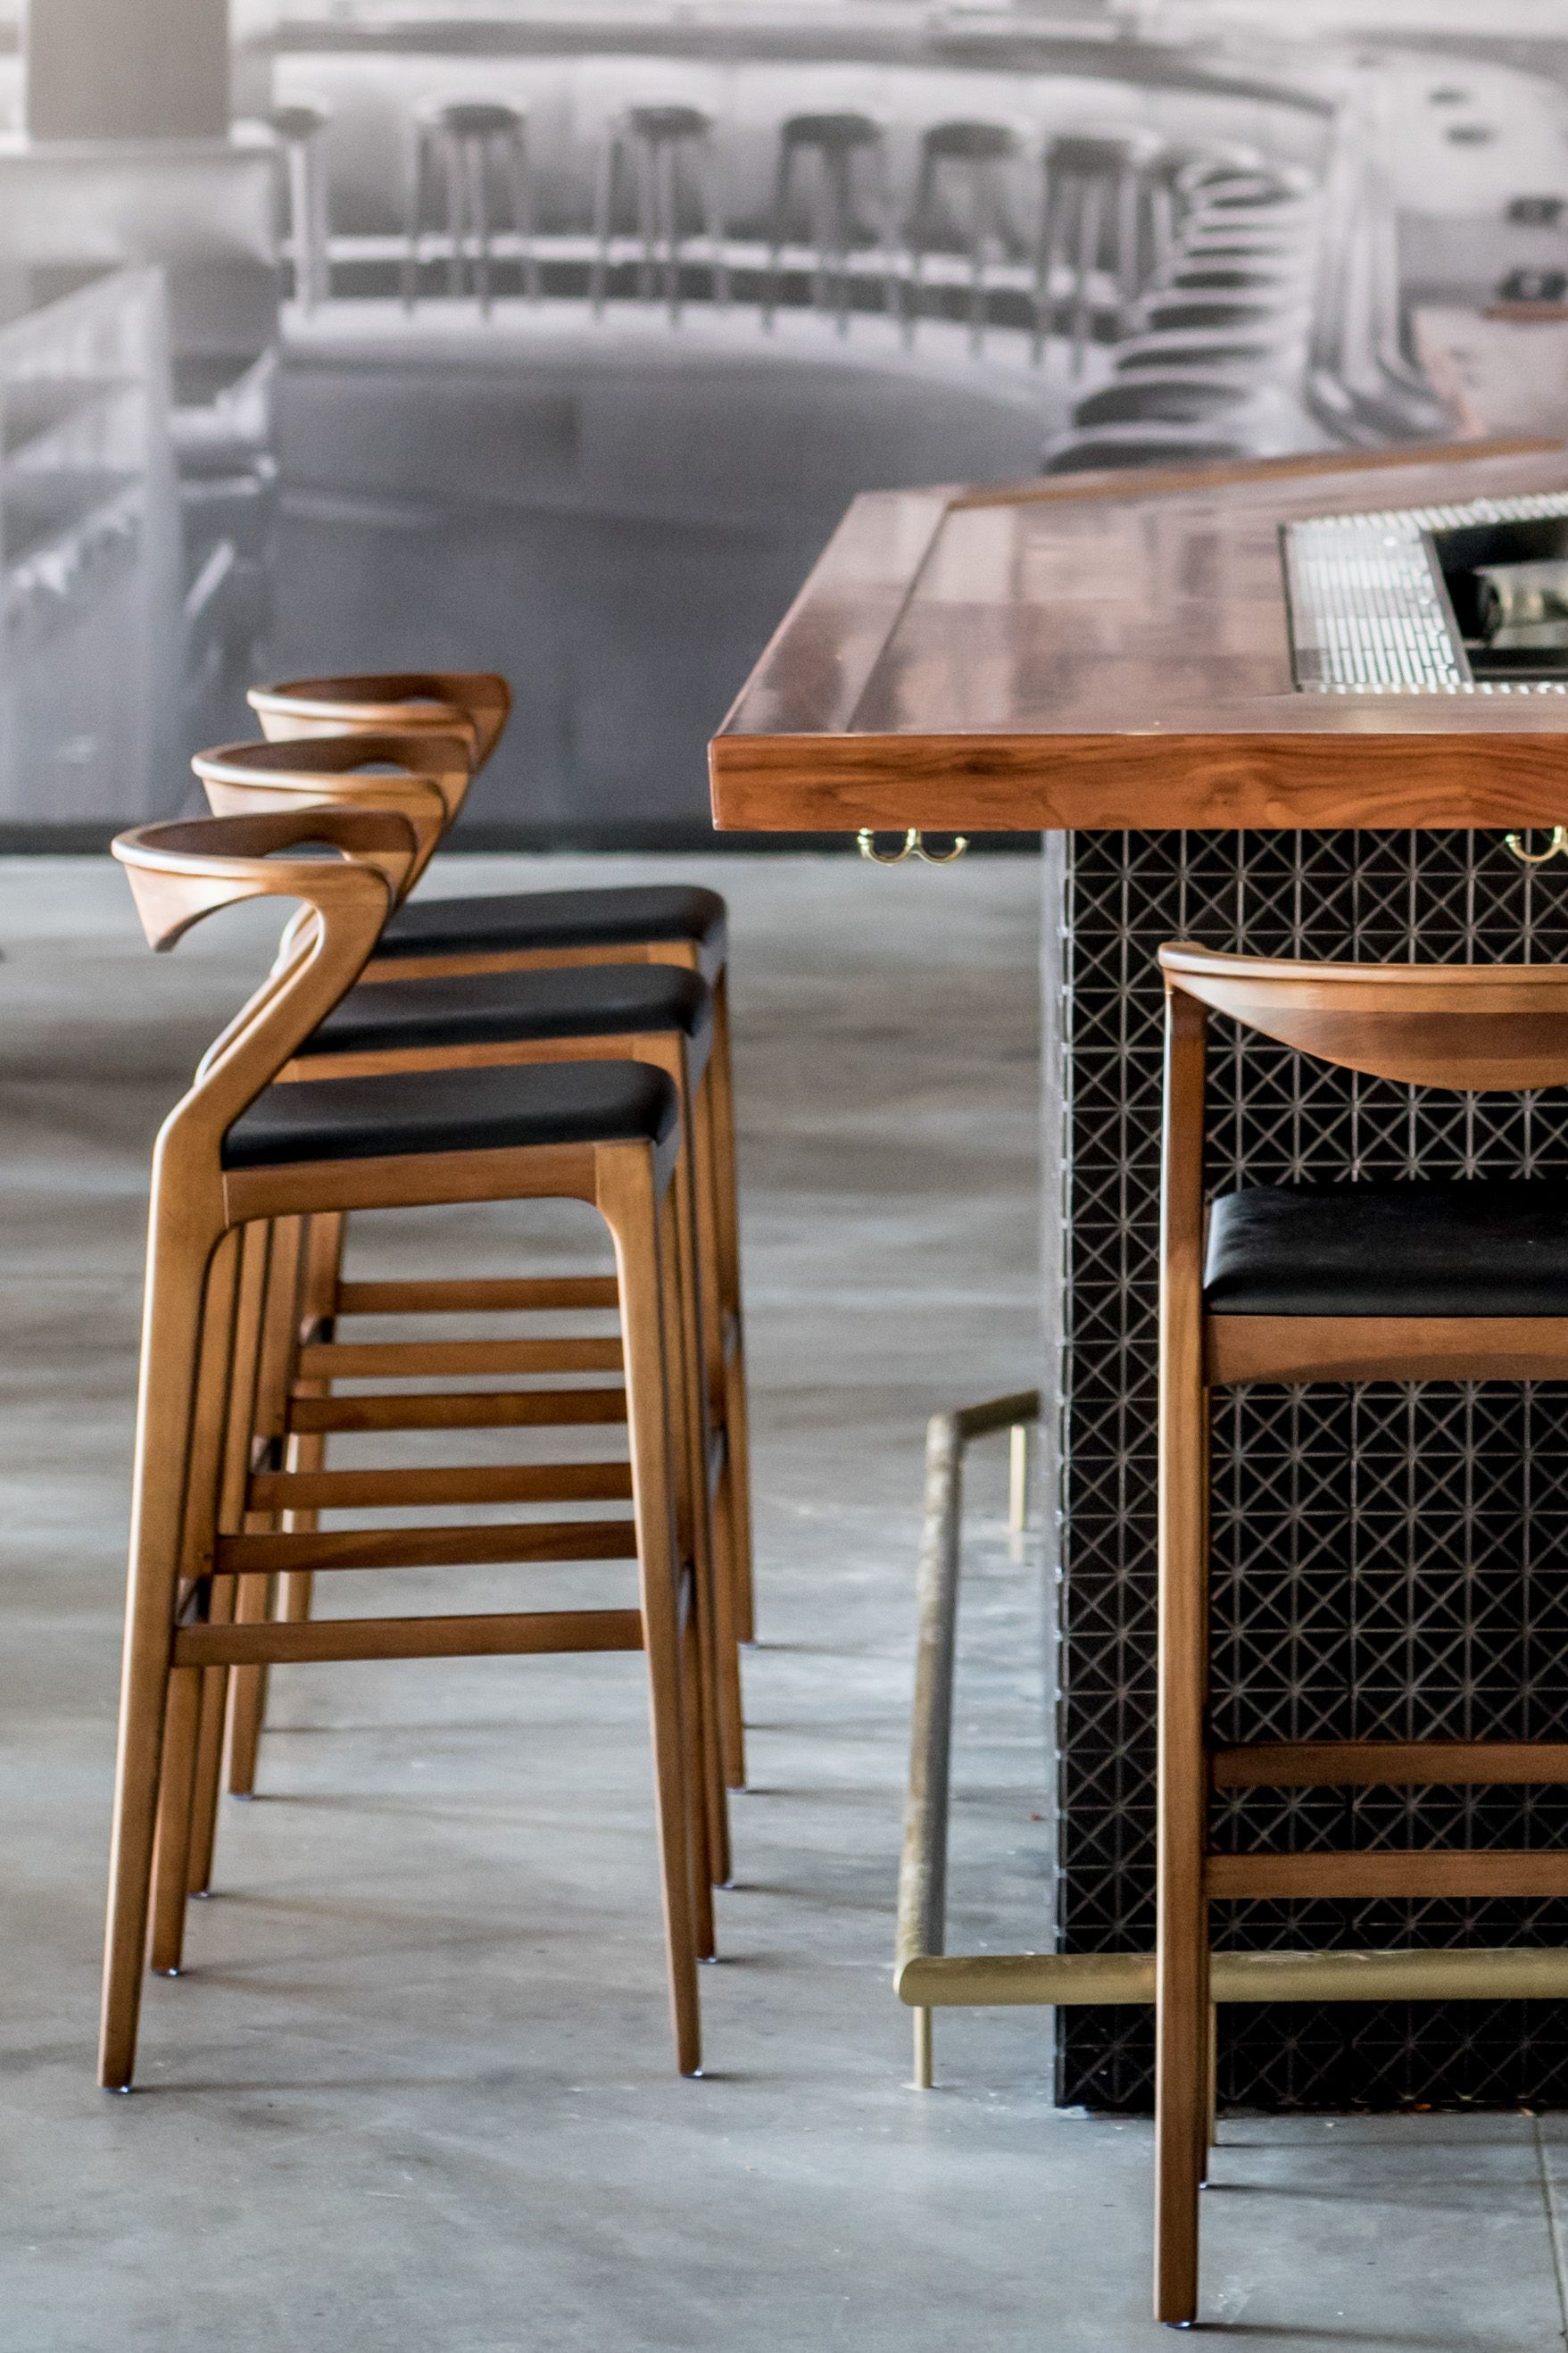 Duda Bar Stool Designed By Aristeu Pires Available At Sossego Modern And Contemporary Brazilian Designer Bar Stools Bar Chairs Kitchen Contemporary Bar Stools